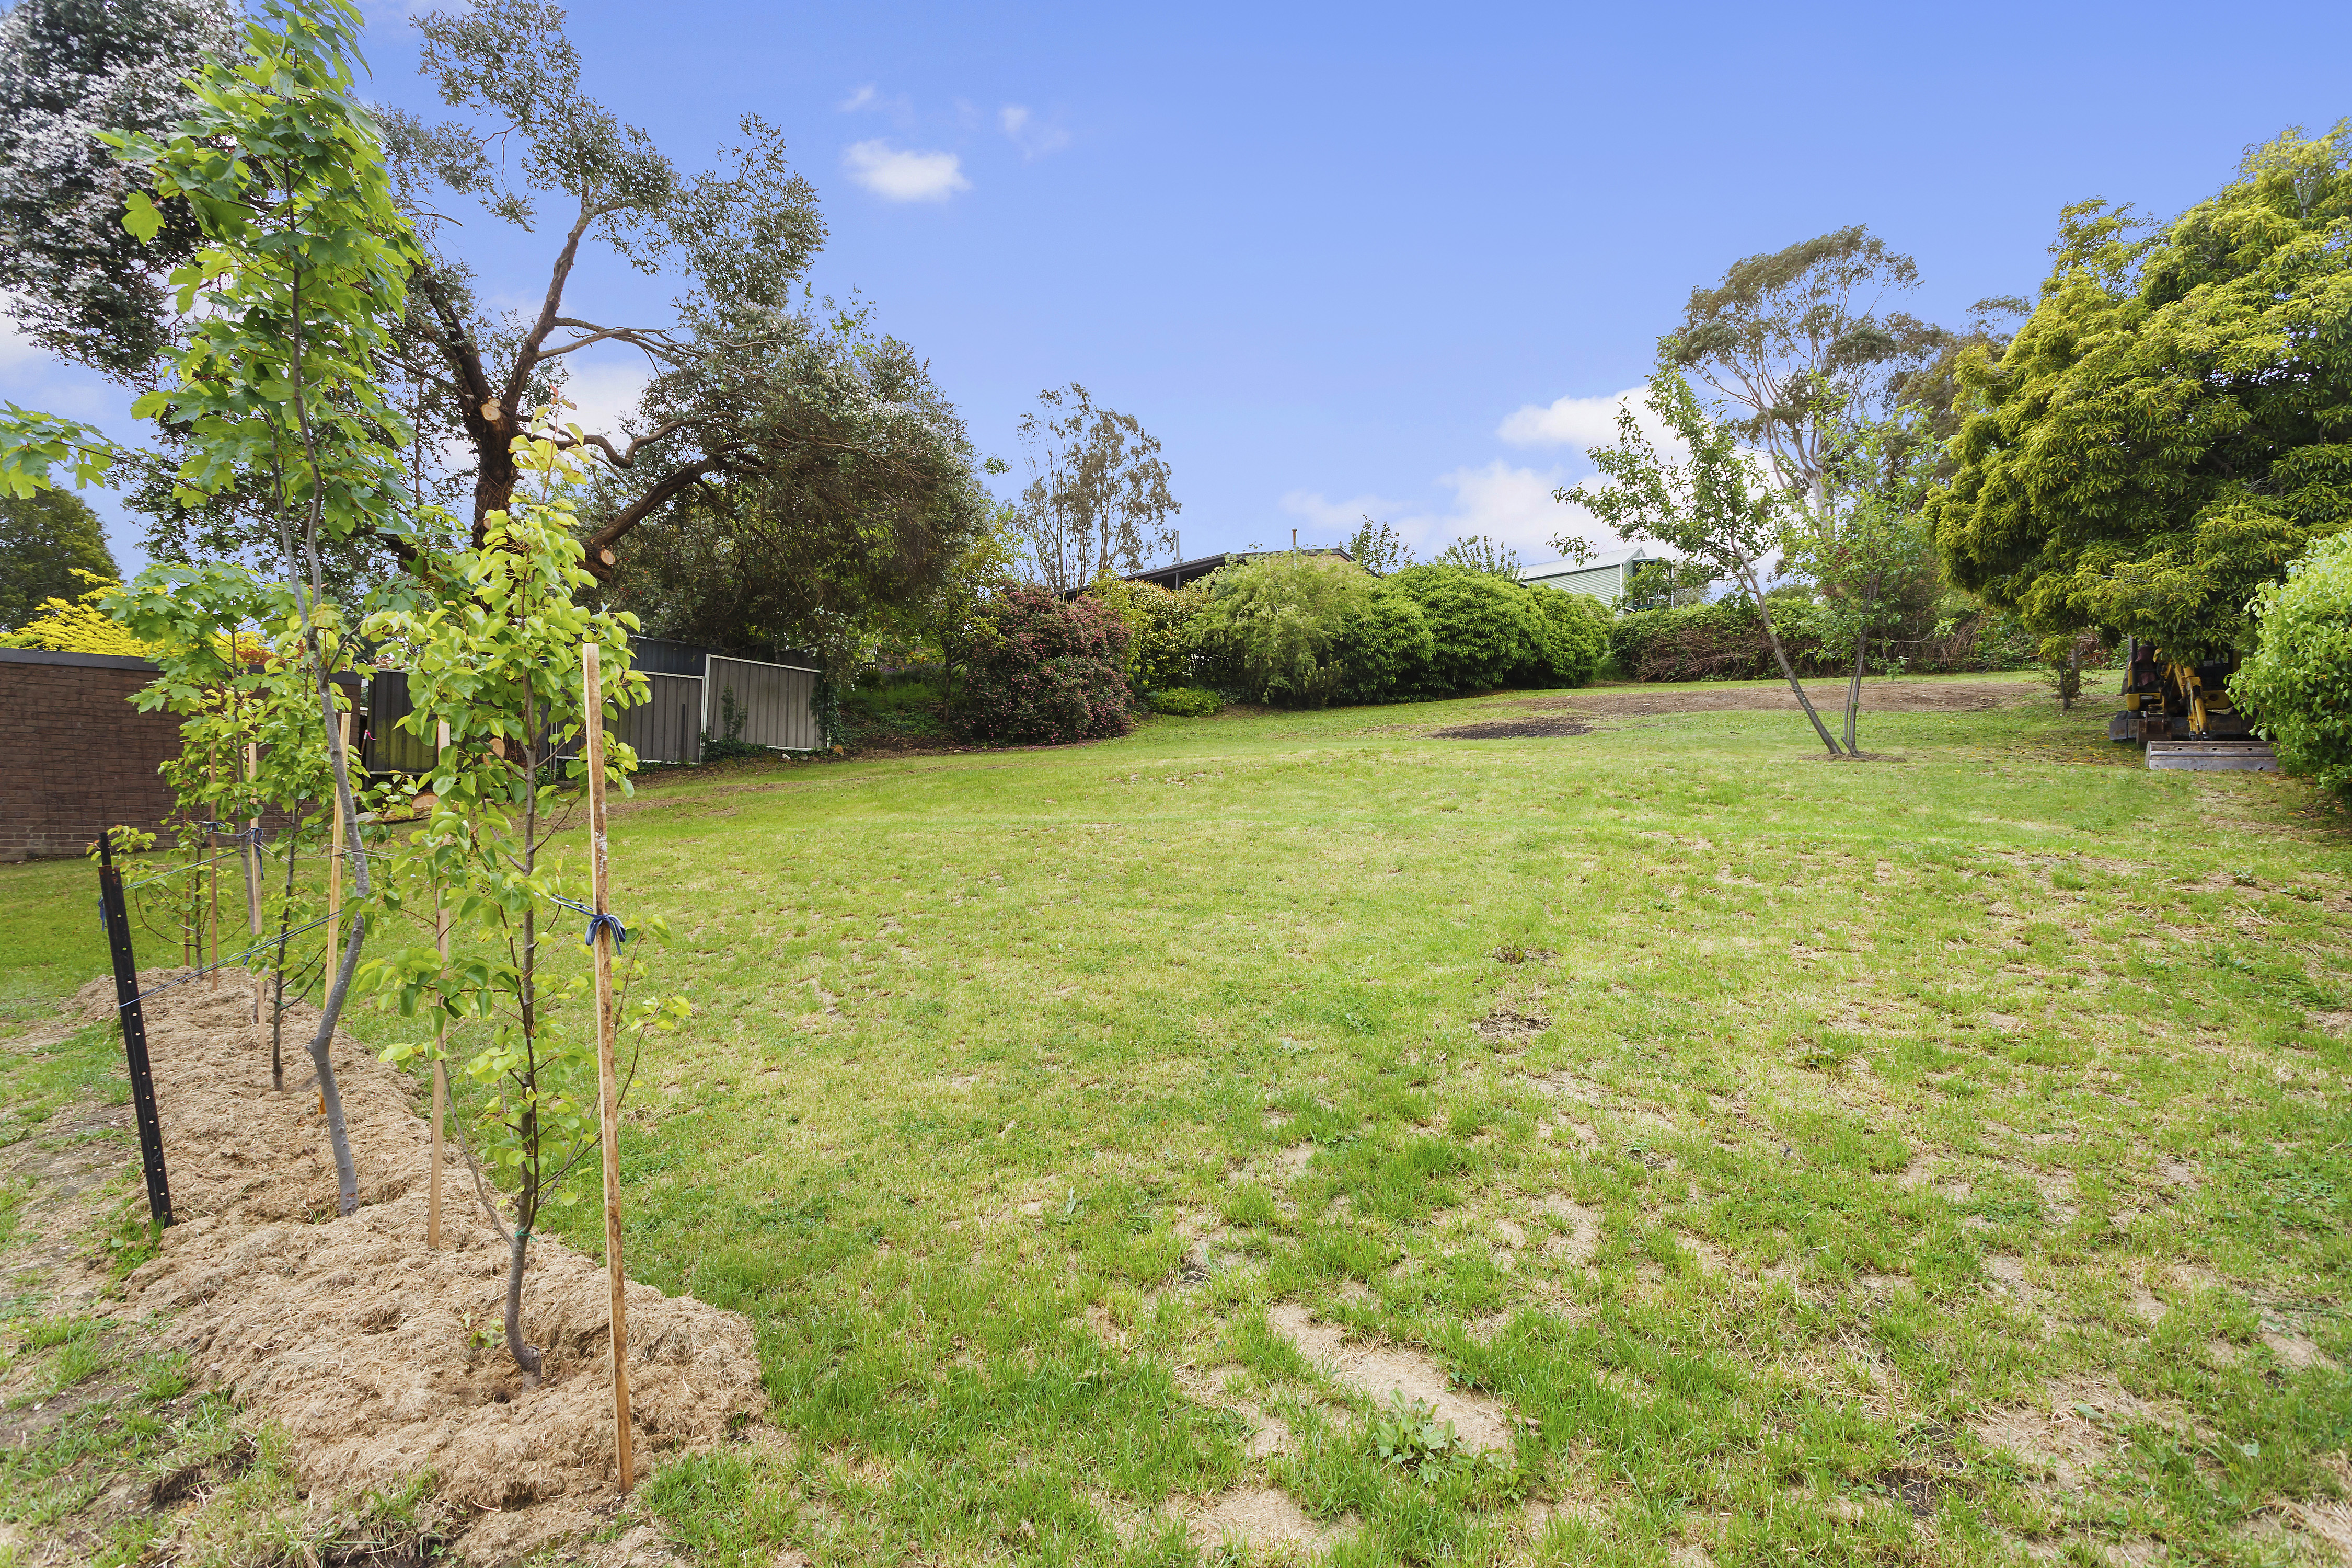 36a, Vincent   Street North, DAYLESFORD, VIC 3460